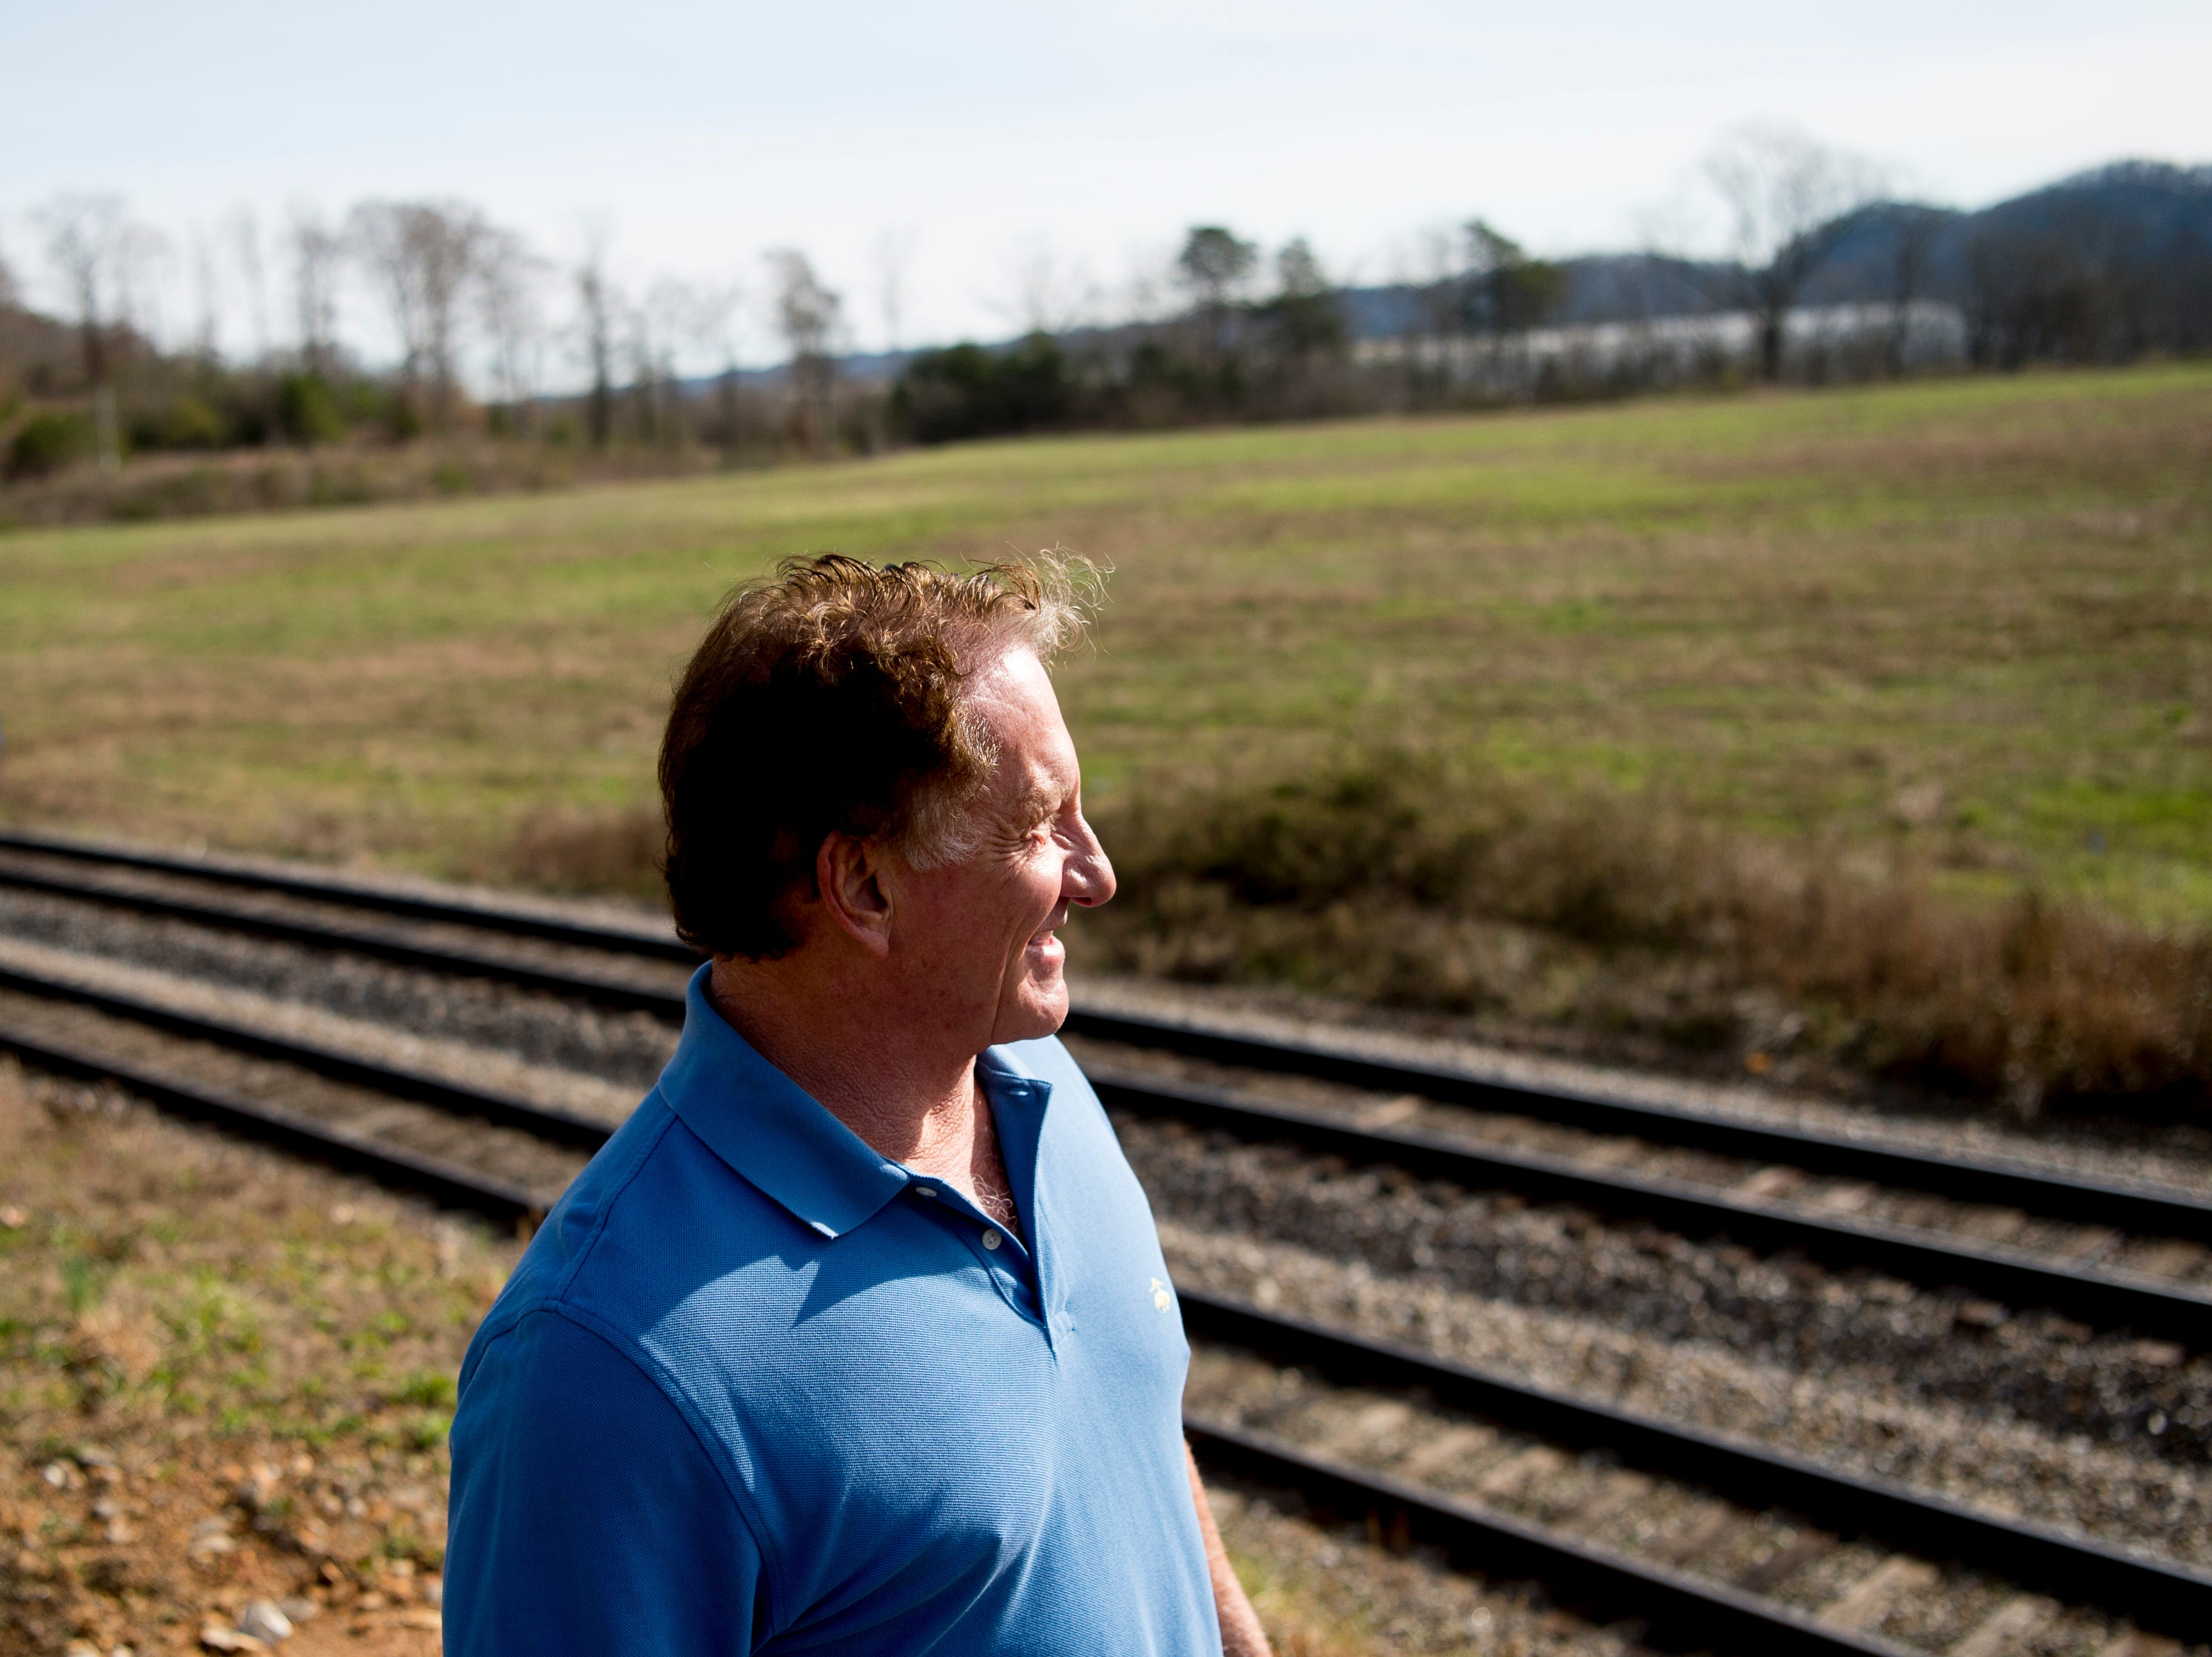 Joe Hollingsworth, president of the Hollingsworth Foundation, looks over the site of the future Aspire Park in Clinton, Tennessee on Tuesday, March 12, 2019. The Hollingsworth Foundation is looking to redevelop nearly 450 acres of land off Yarnell Road into a recreational park.